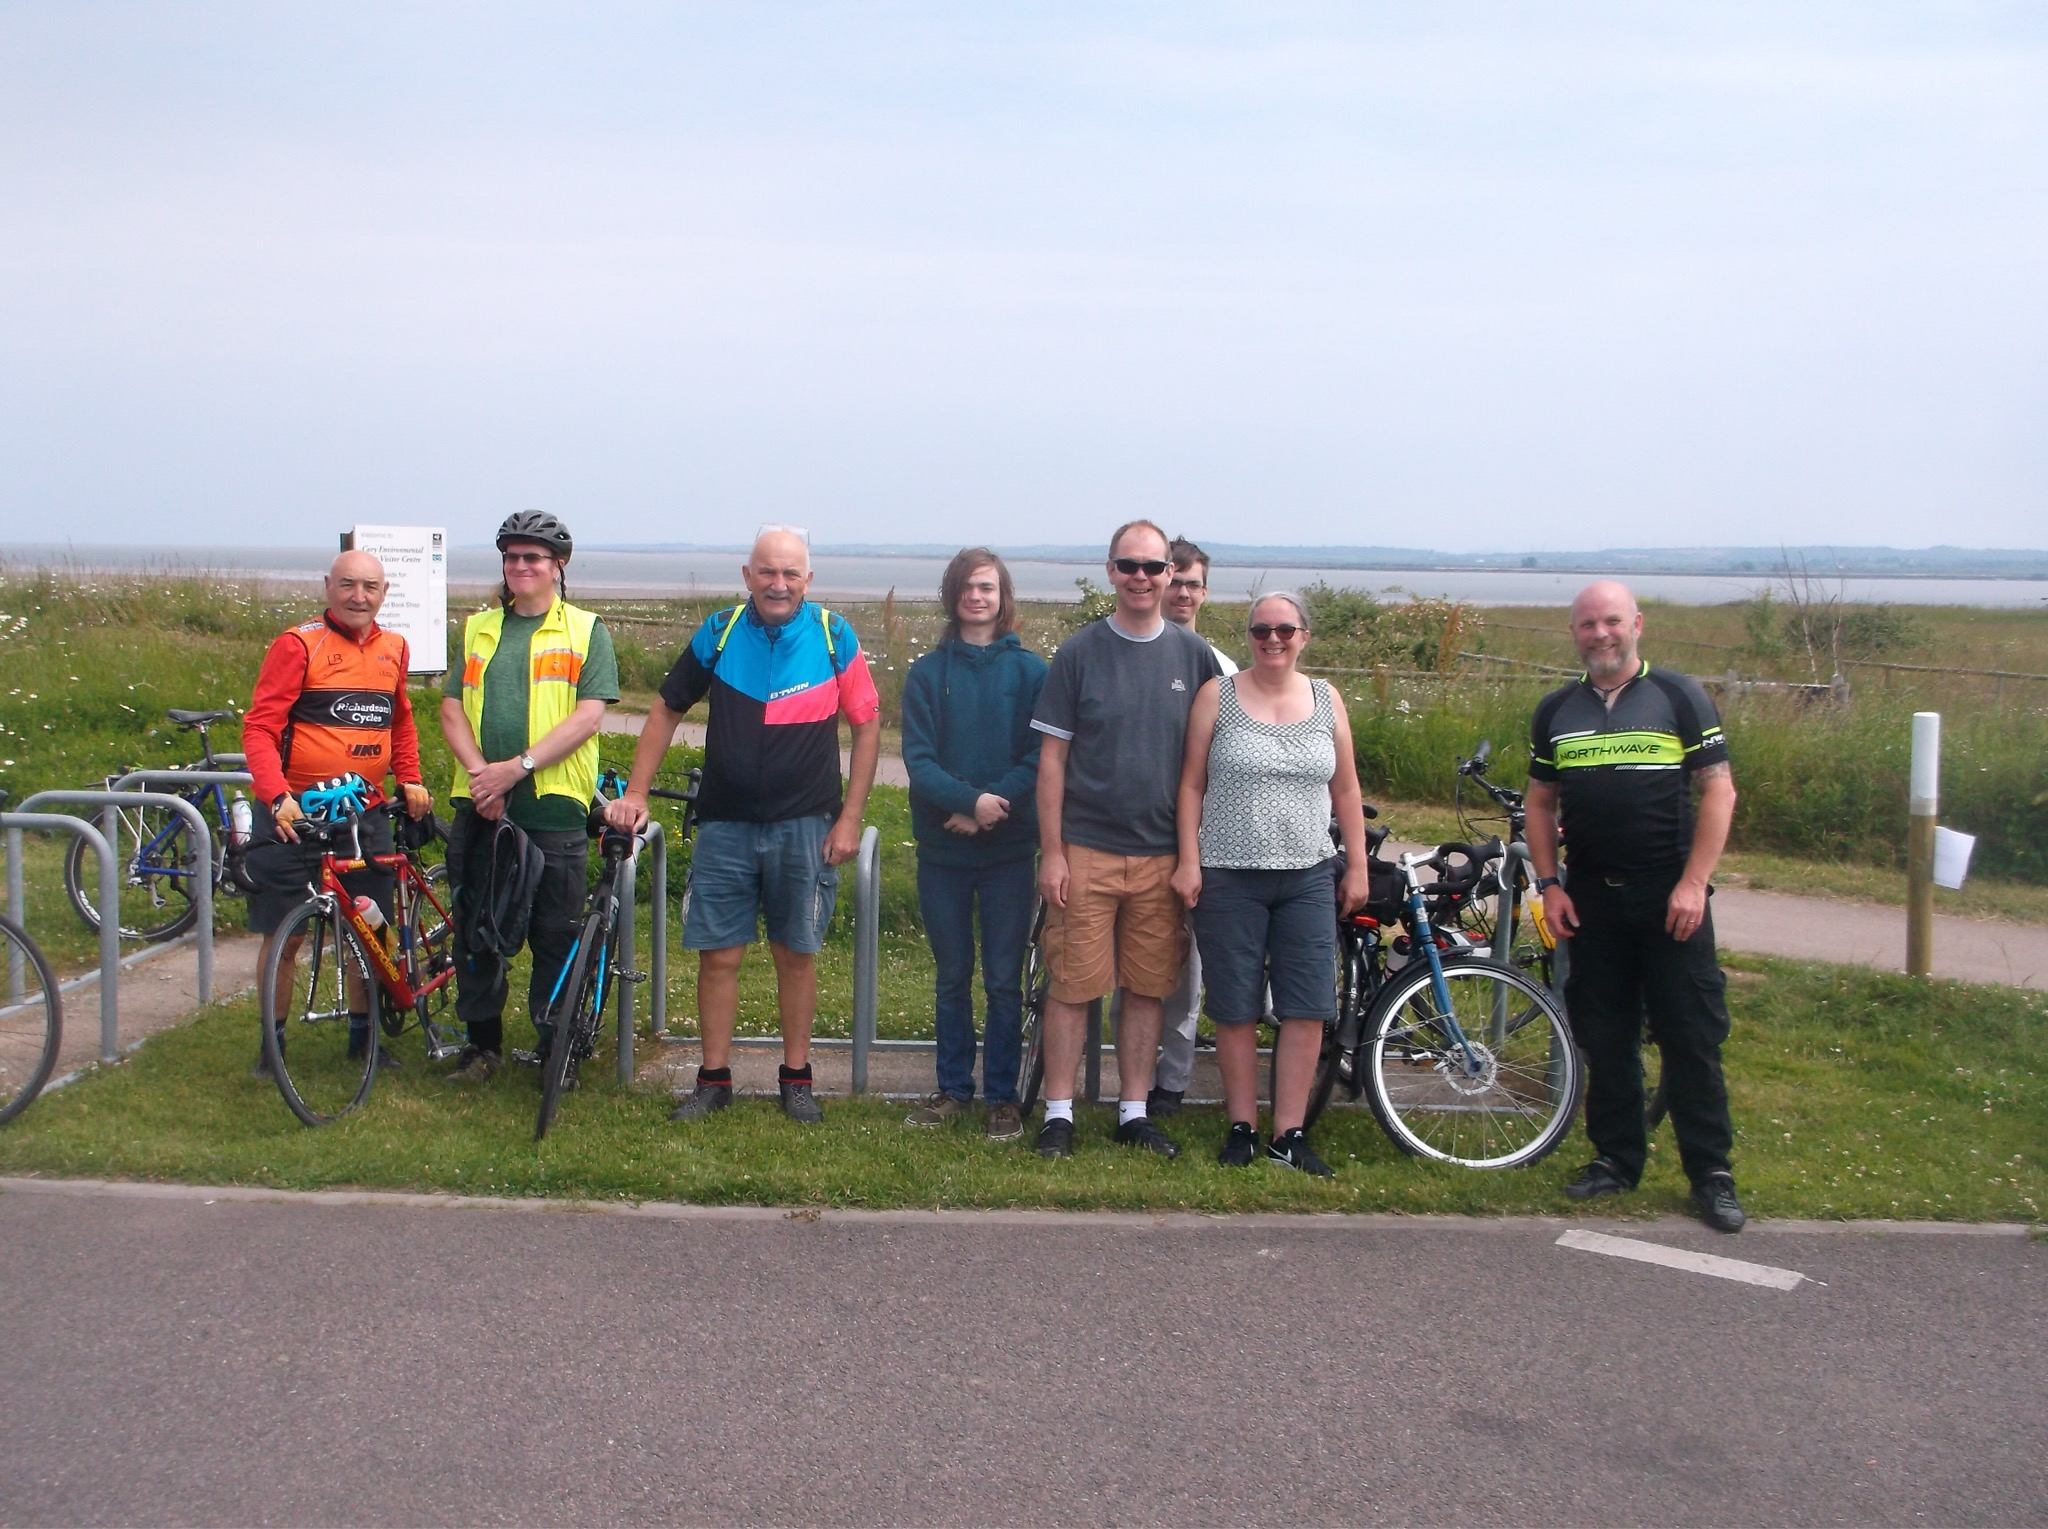 Gateway Family Ride to Thameside Nature Park – Ride Report